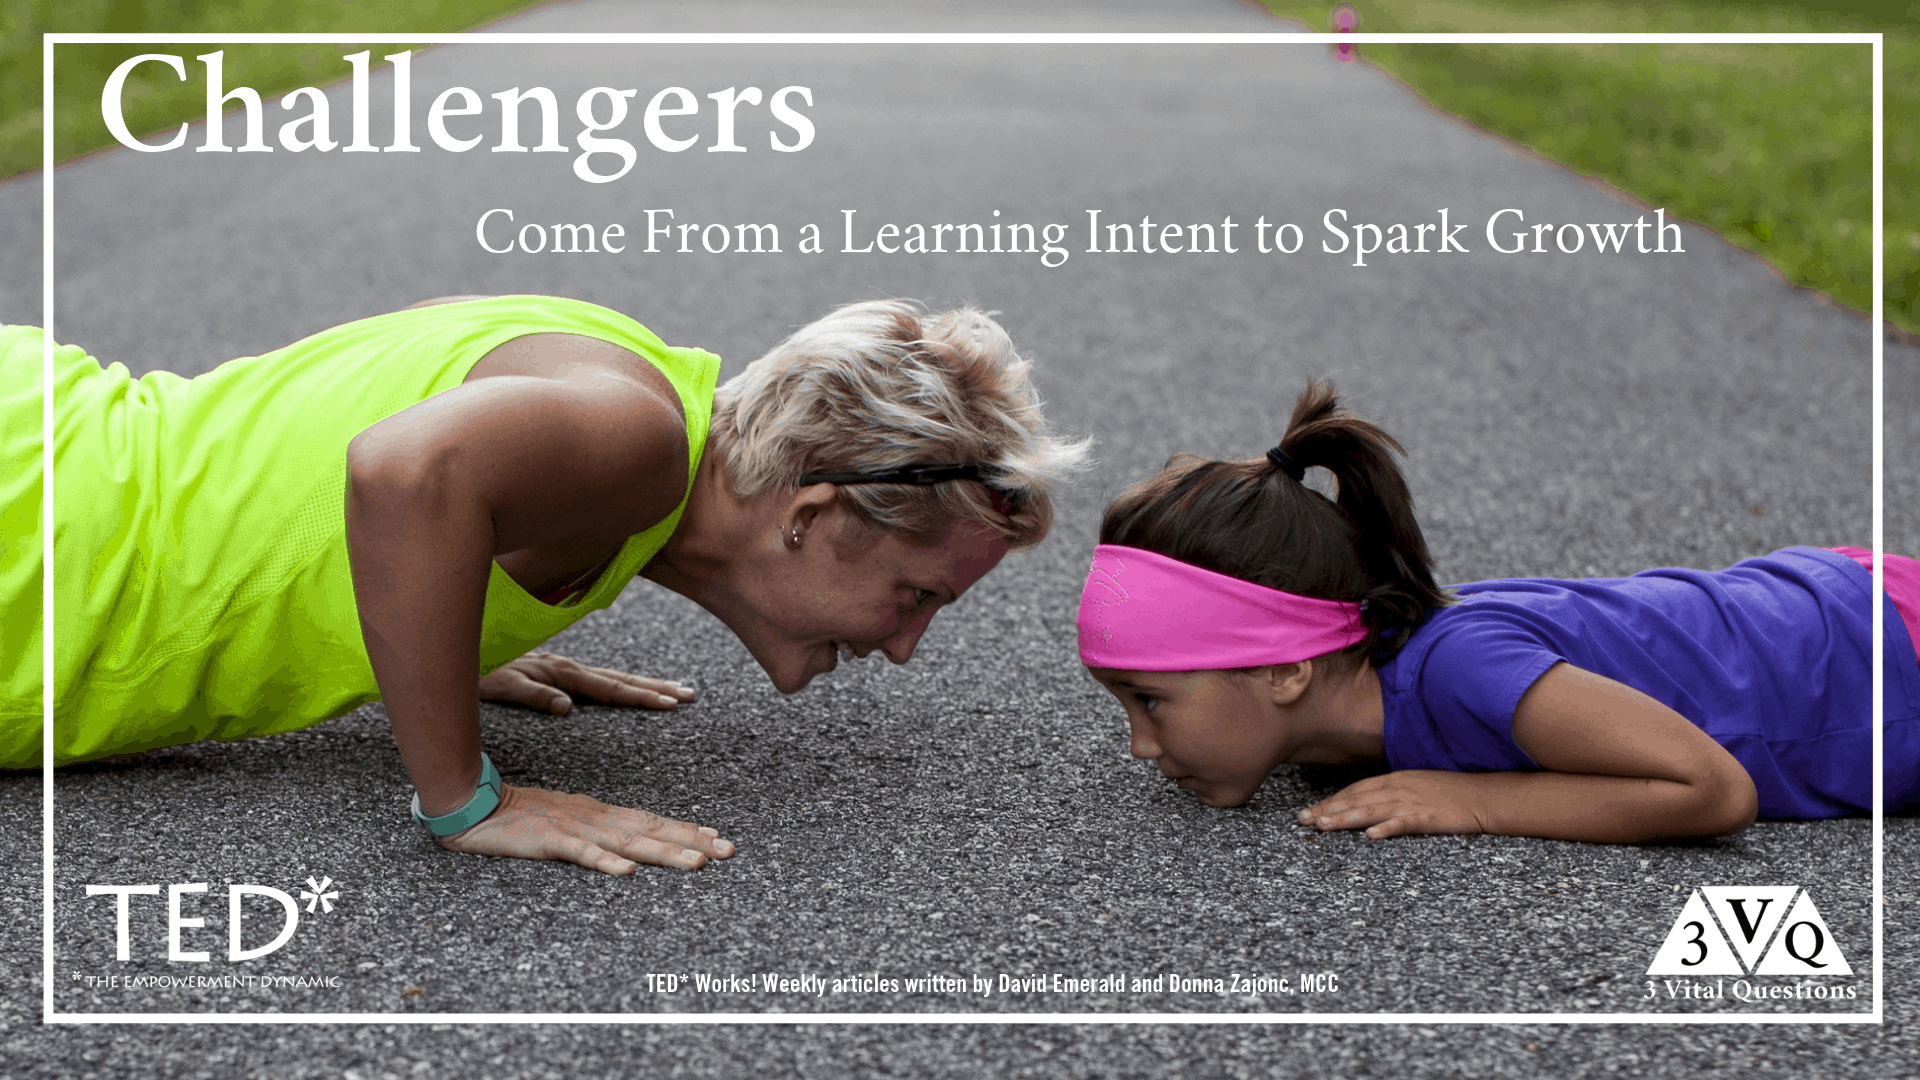 Challengers come from a learning intent to spark growth